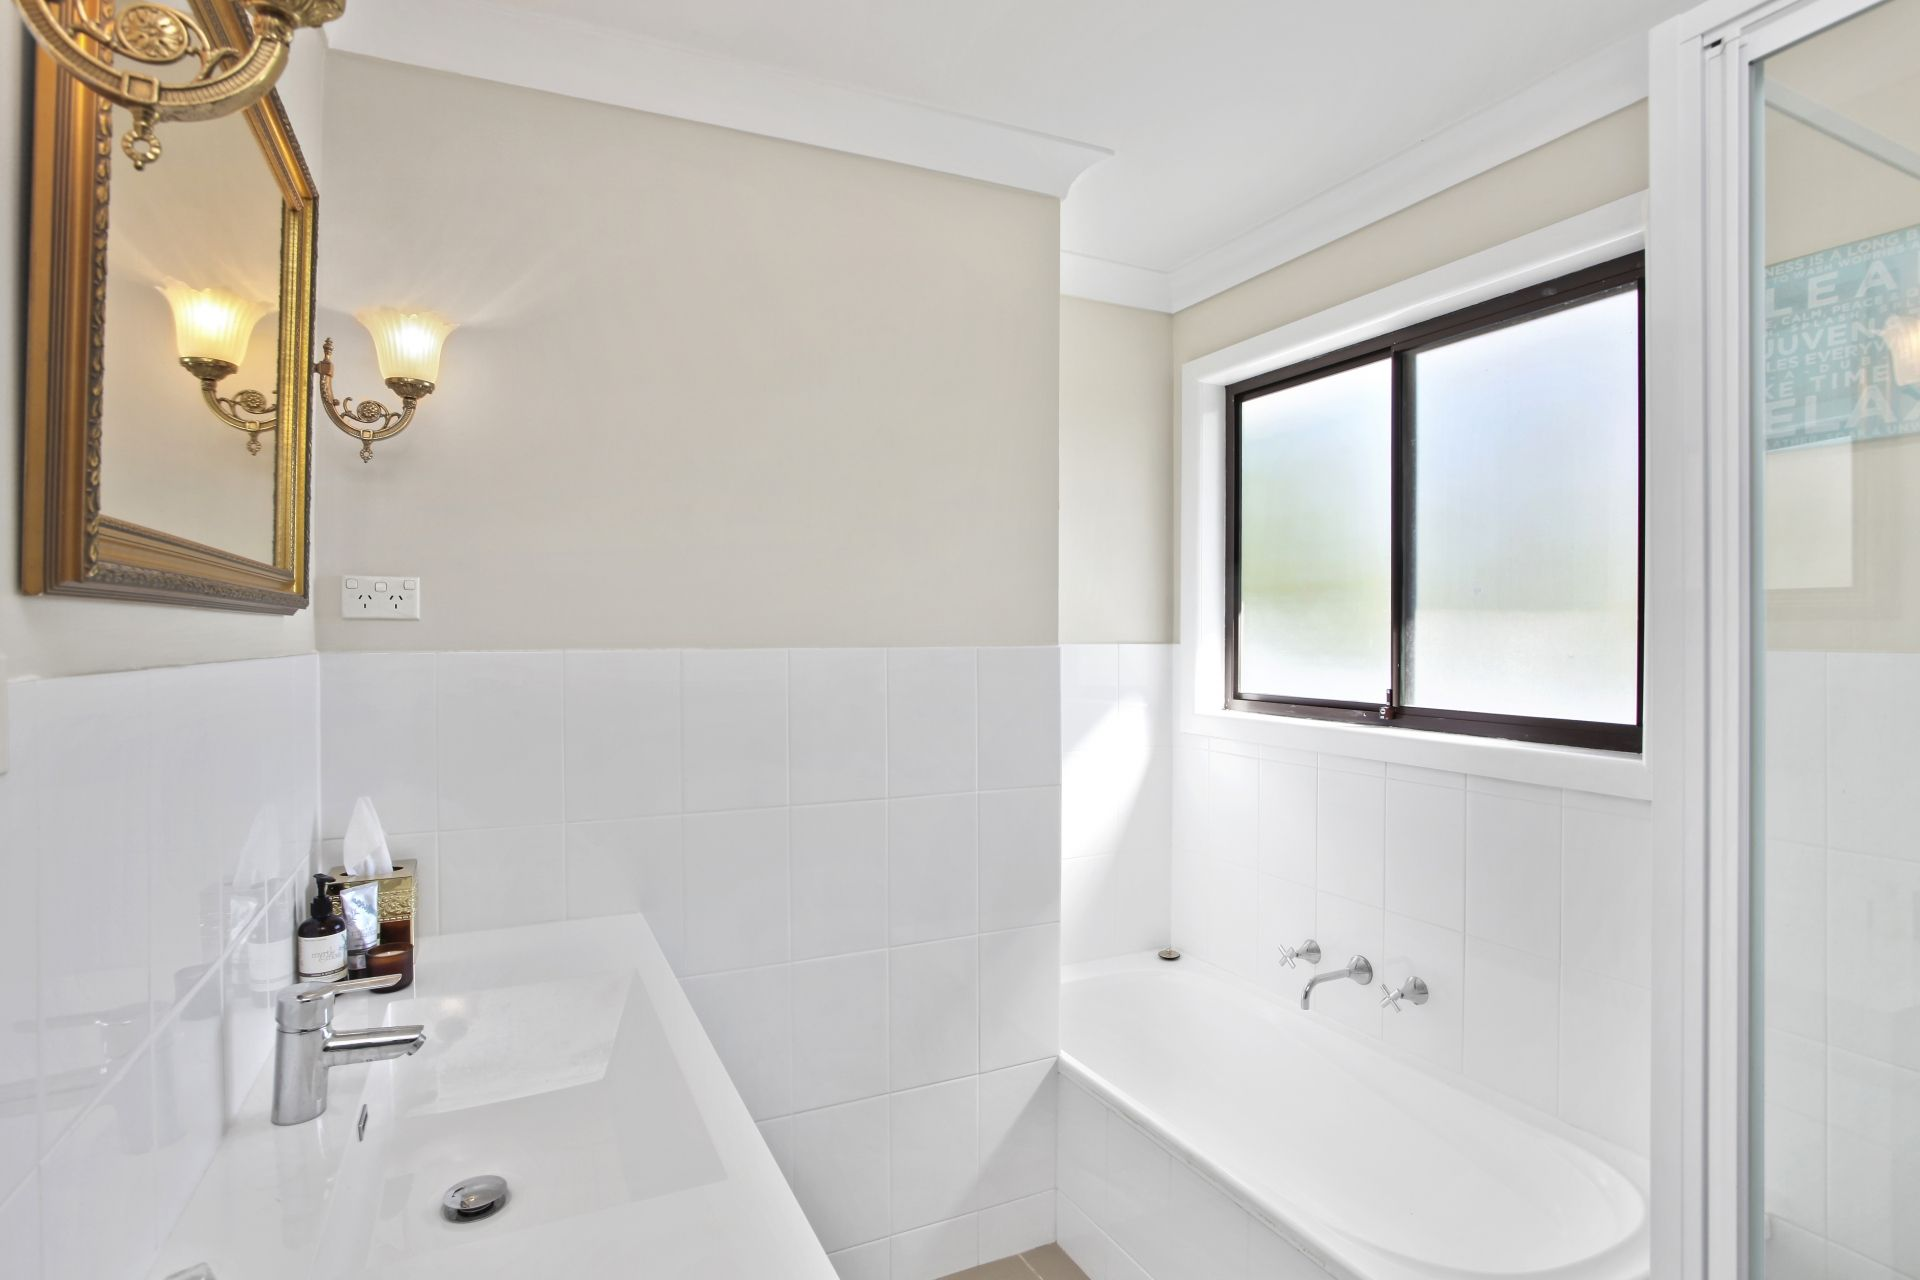 17 Blue Gum Avenue Medlow Bath 2780